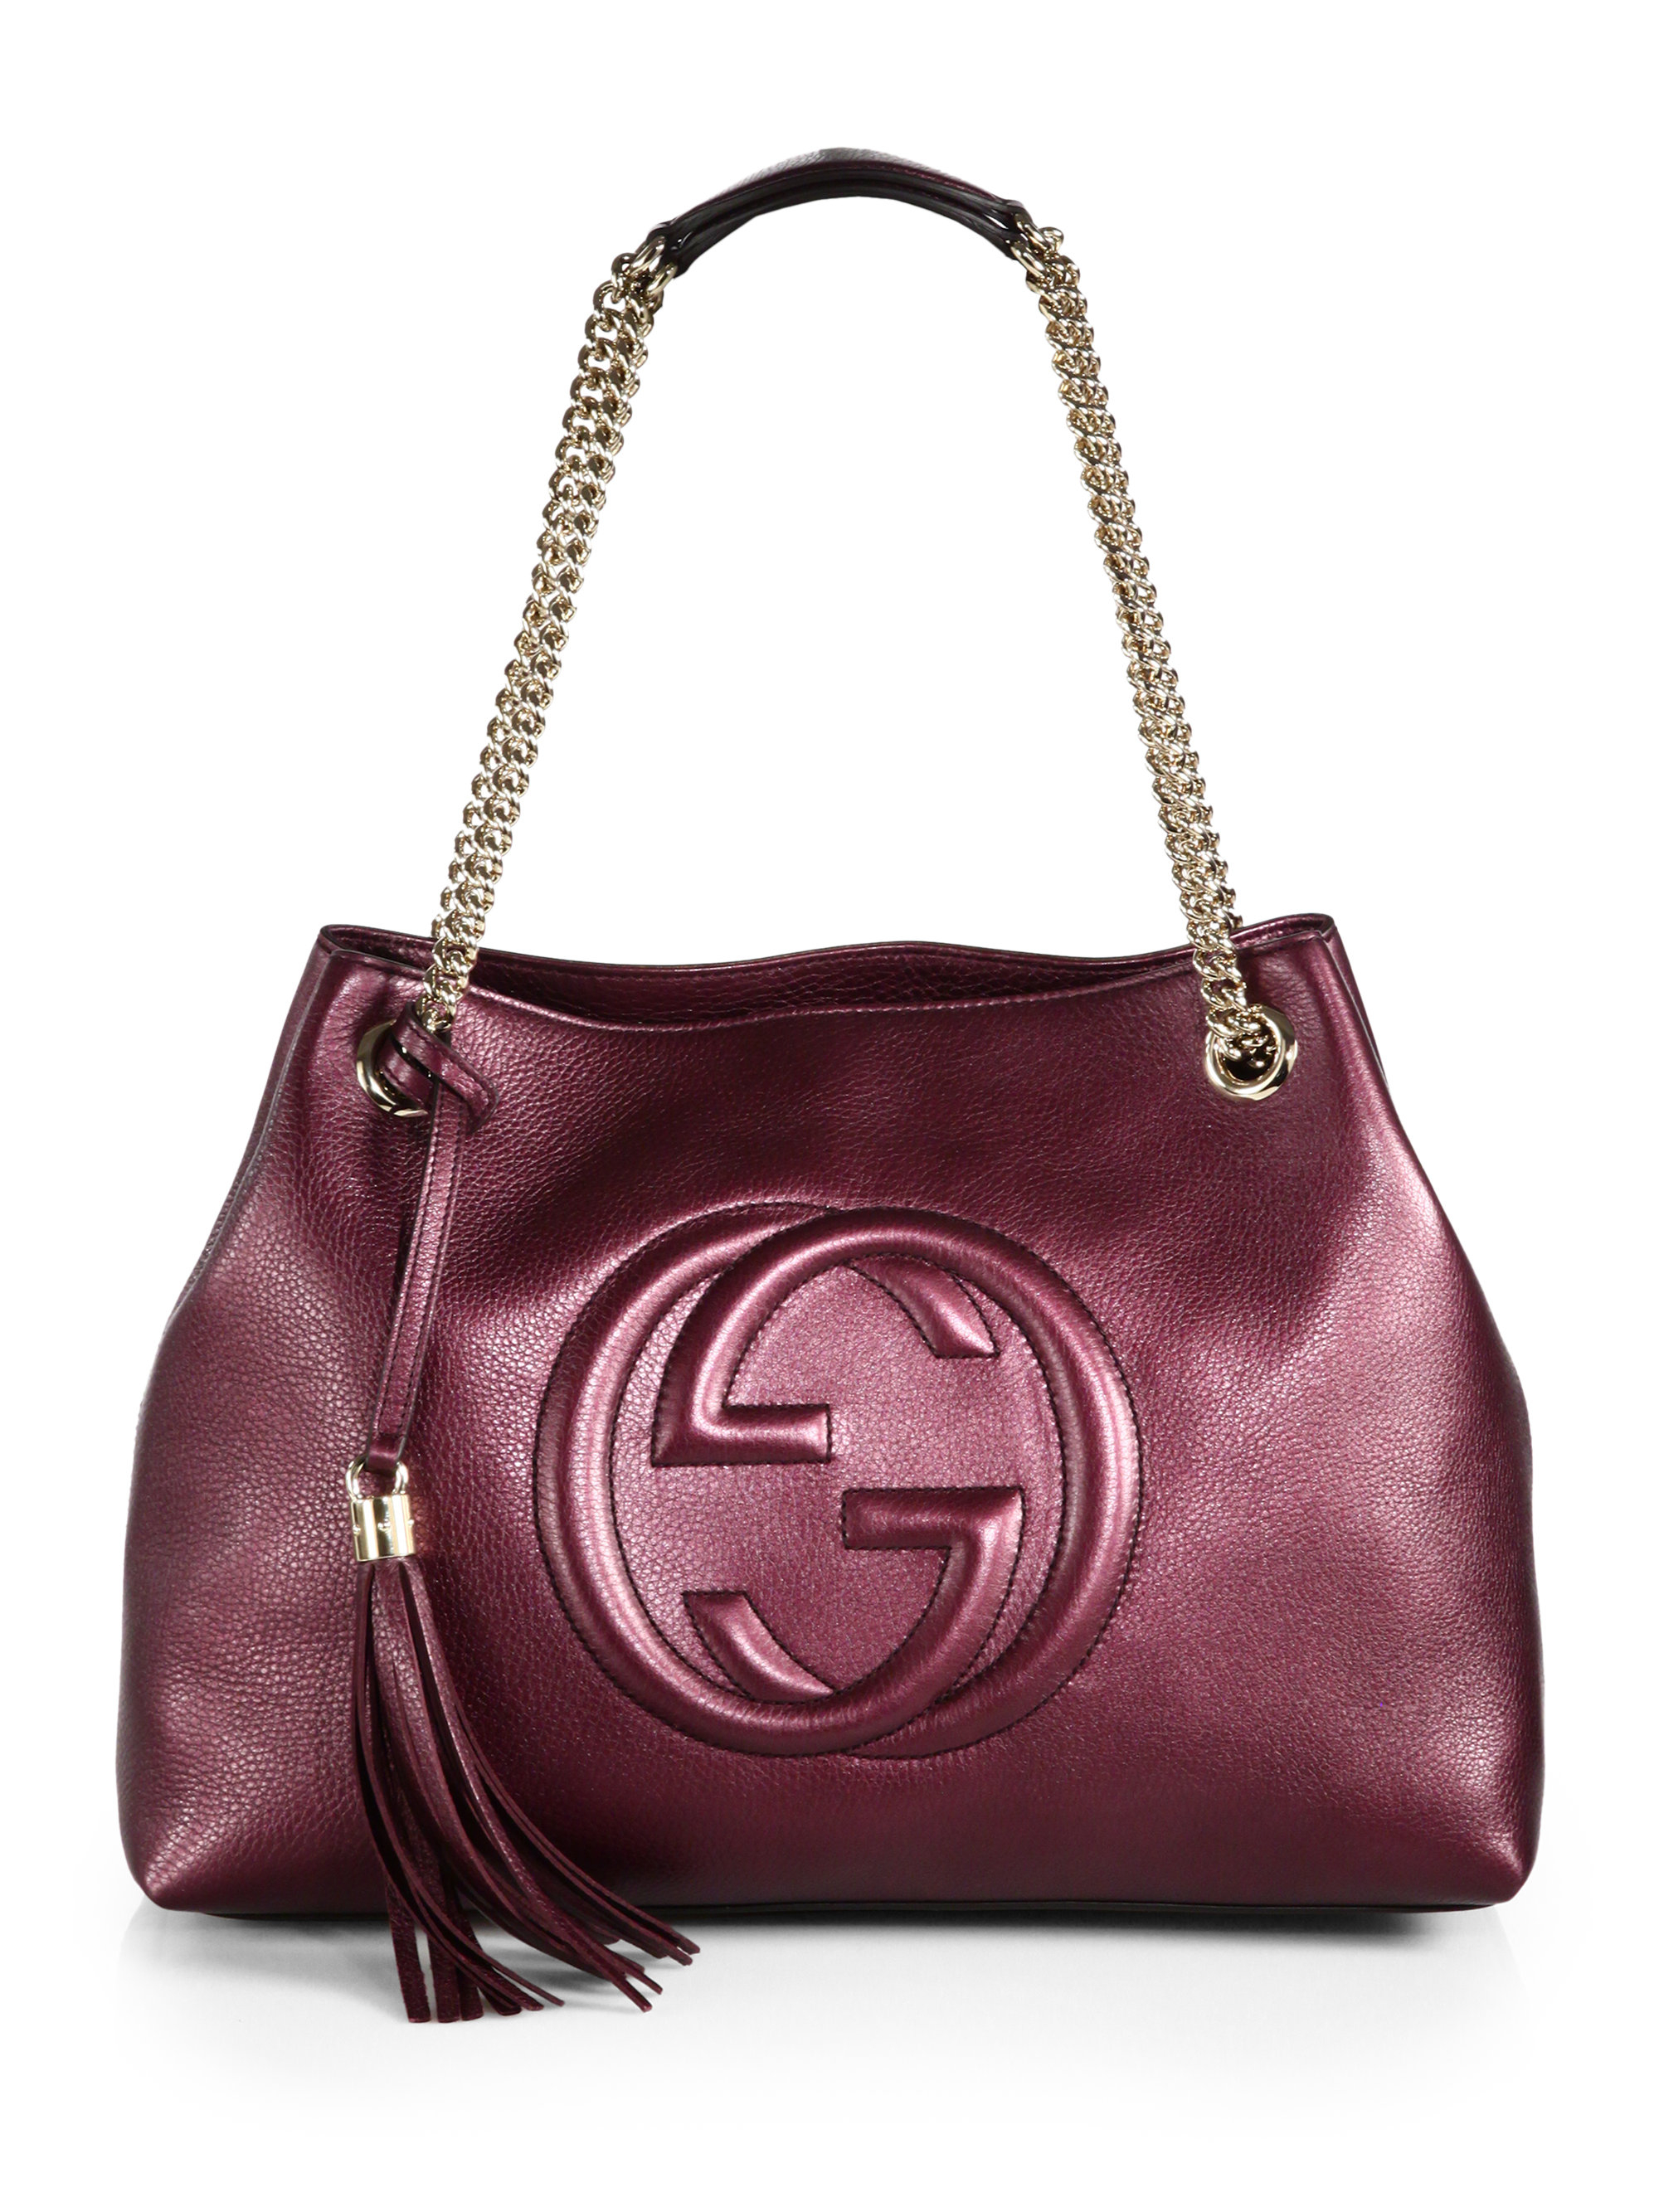 39cca5362e6 Gallery. Previously sold at  Saks Fifth Avenue · Women s Gucci Soho Bag